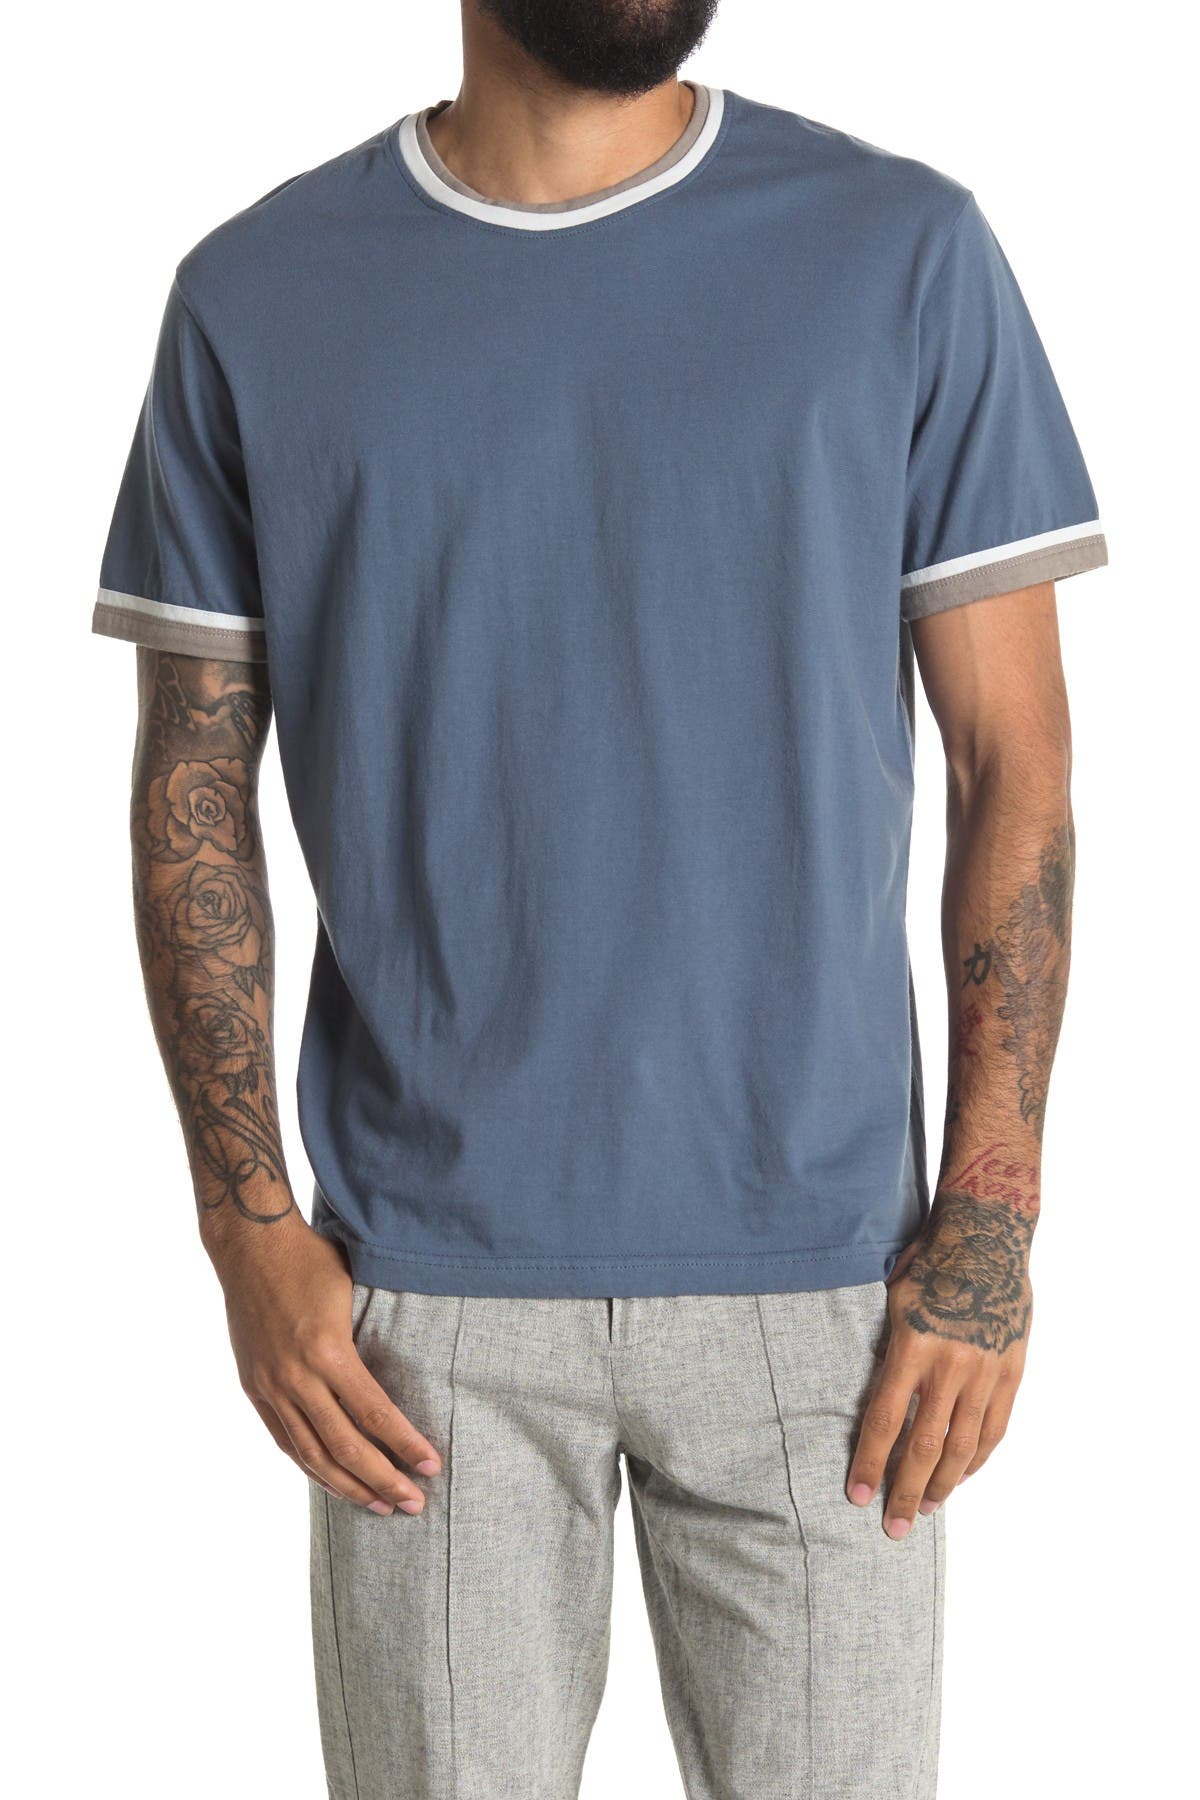 Image of THE NORMAL BRAND Varsity Ringer T-Shirt